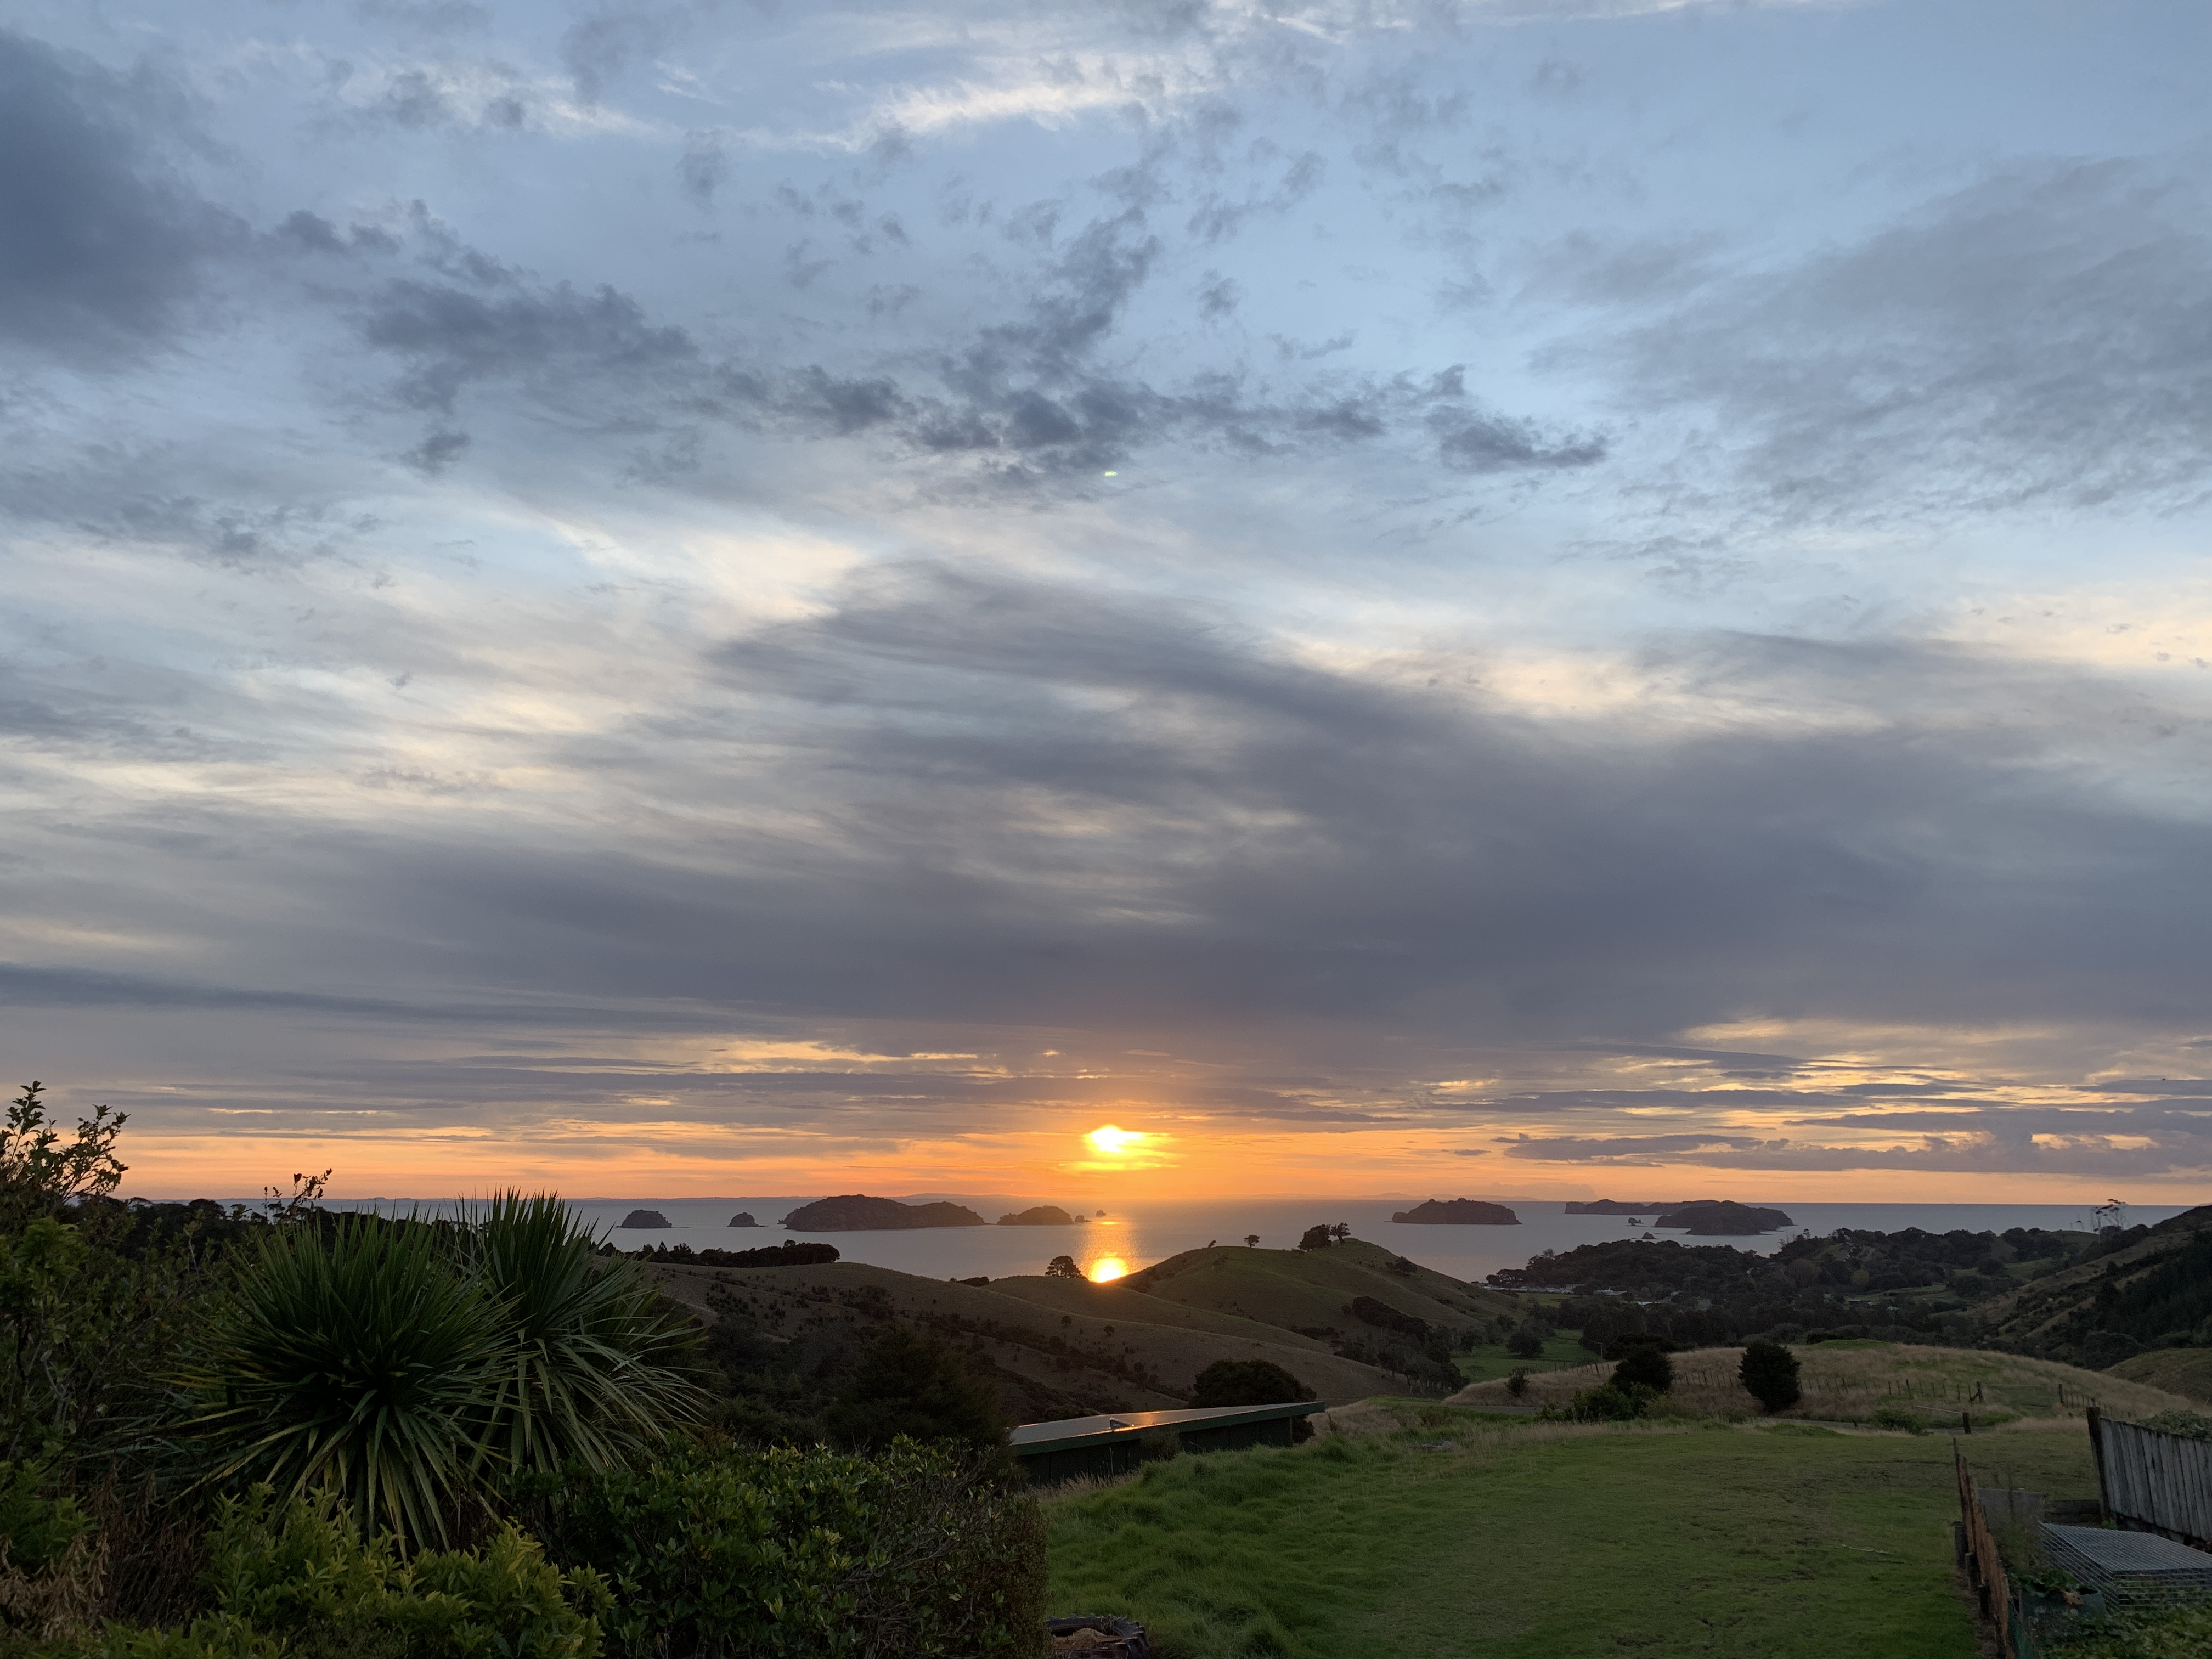 Sunset from the Whittle family home in Papa Aroha